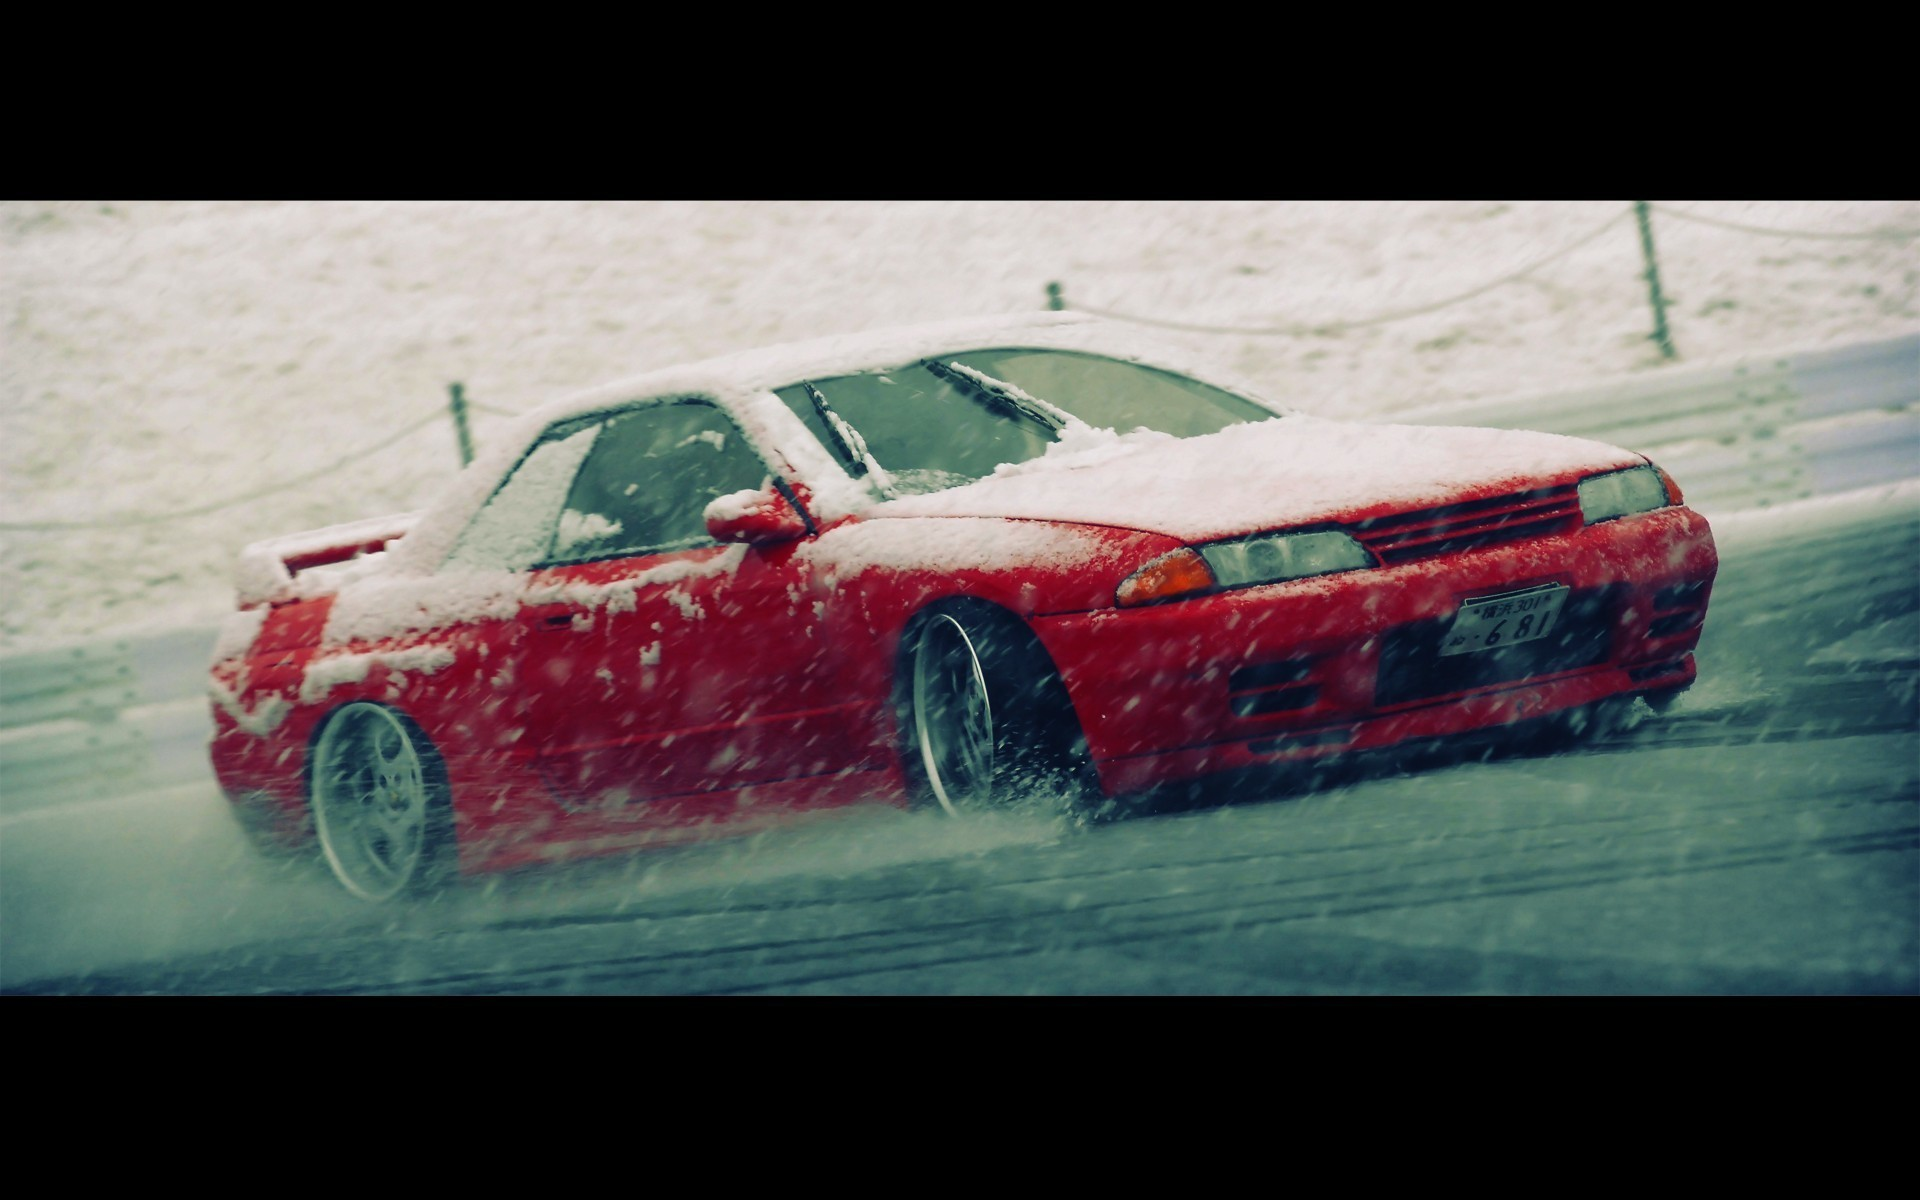 1920x1200 Nissan skyline r32 blizzard drifting cars snow wallpaper